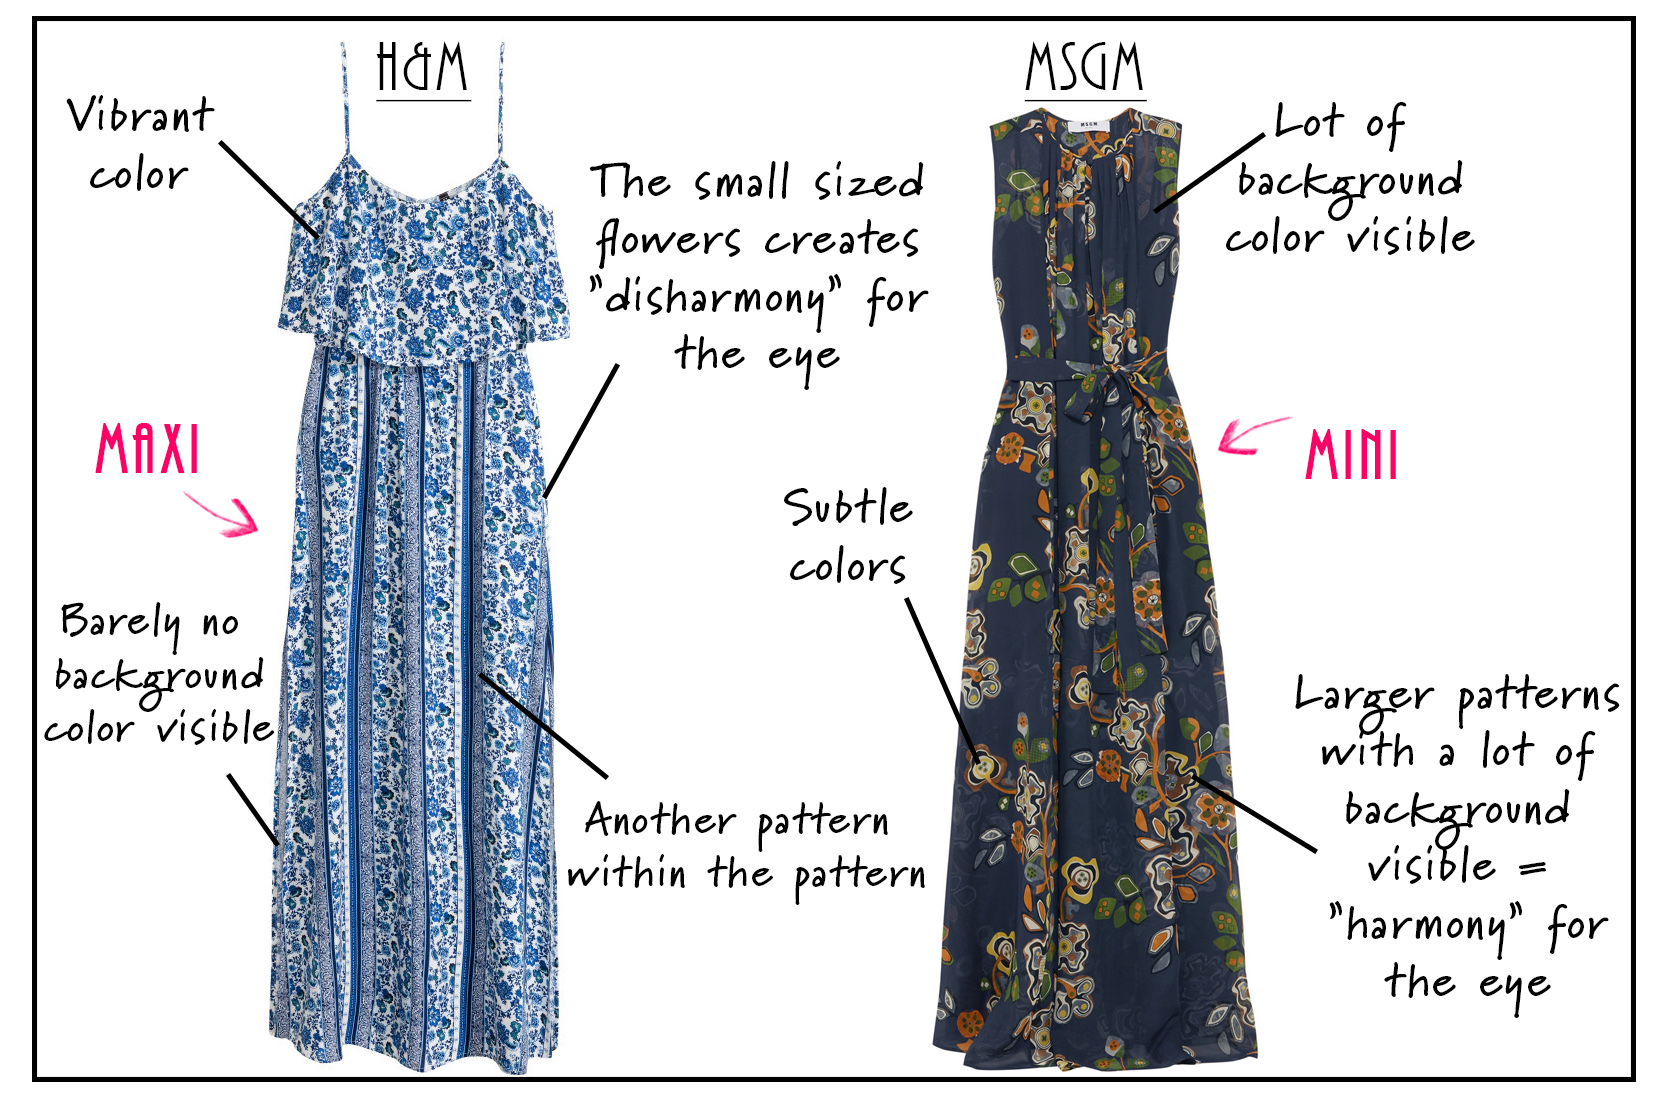 Why you should wear patterns